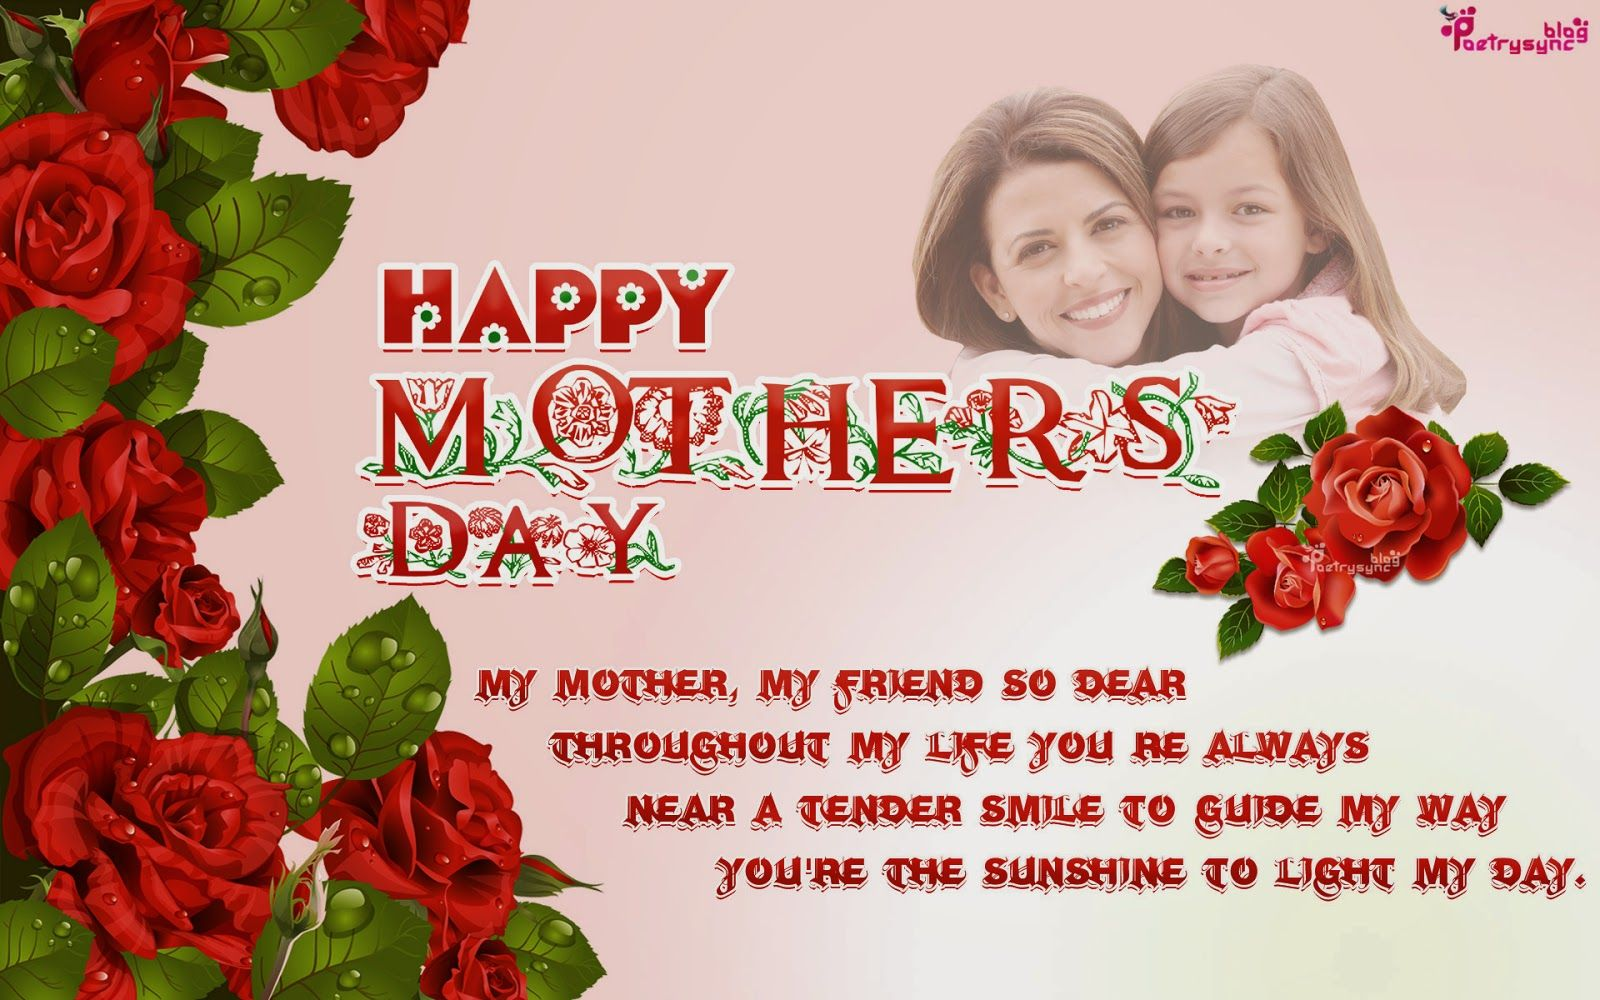 Poetry happy mothers day greetings wallpapers with messages poetry happy mothers day greetings wallpapers with messages kristyandbryce Gallery